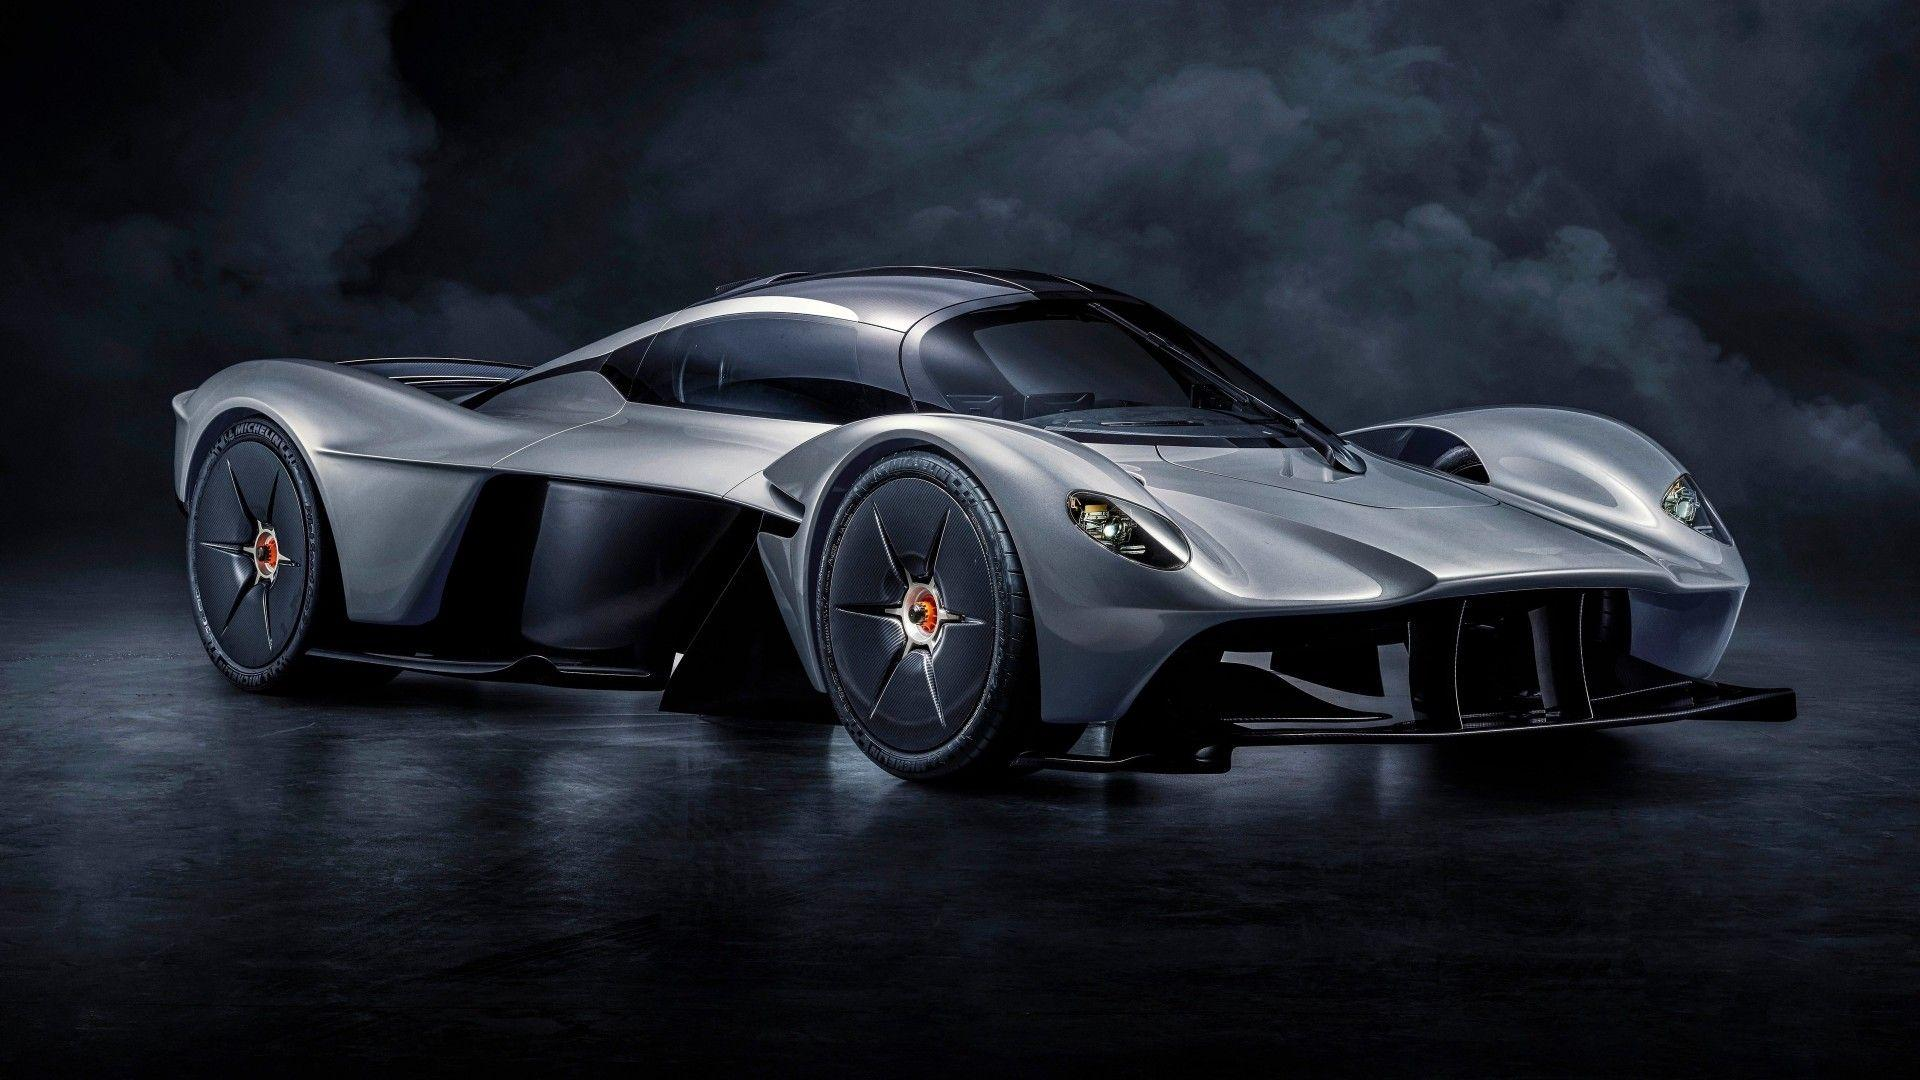 Download 1920x1080 Aston Martin Valkyrie, Supercars, Silver, Side